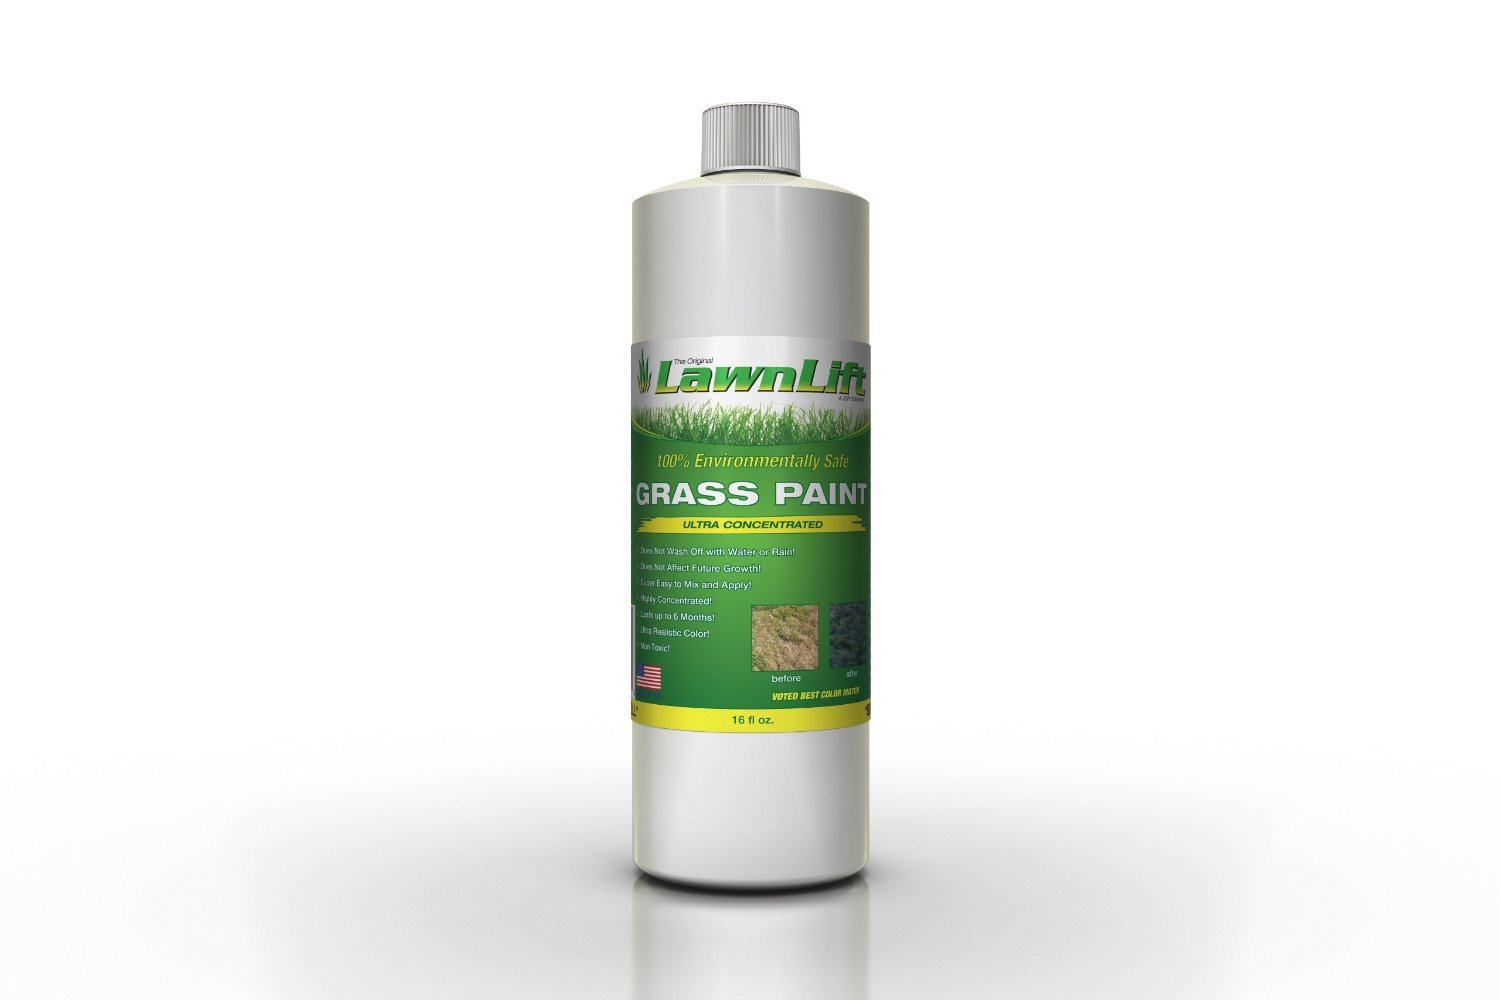 Lawnlift Ultra Concentrated (Green) Grass Paint 16oz. = up to 1 Gallon of Product.